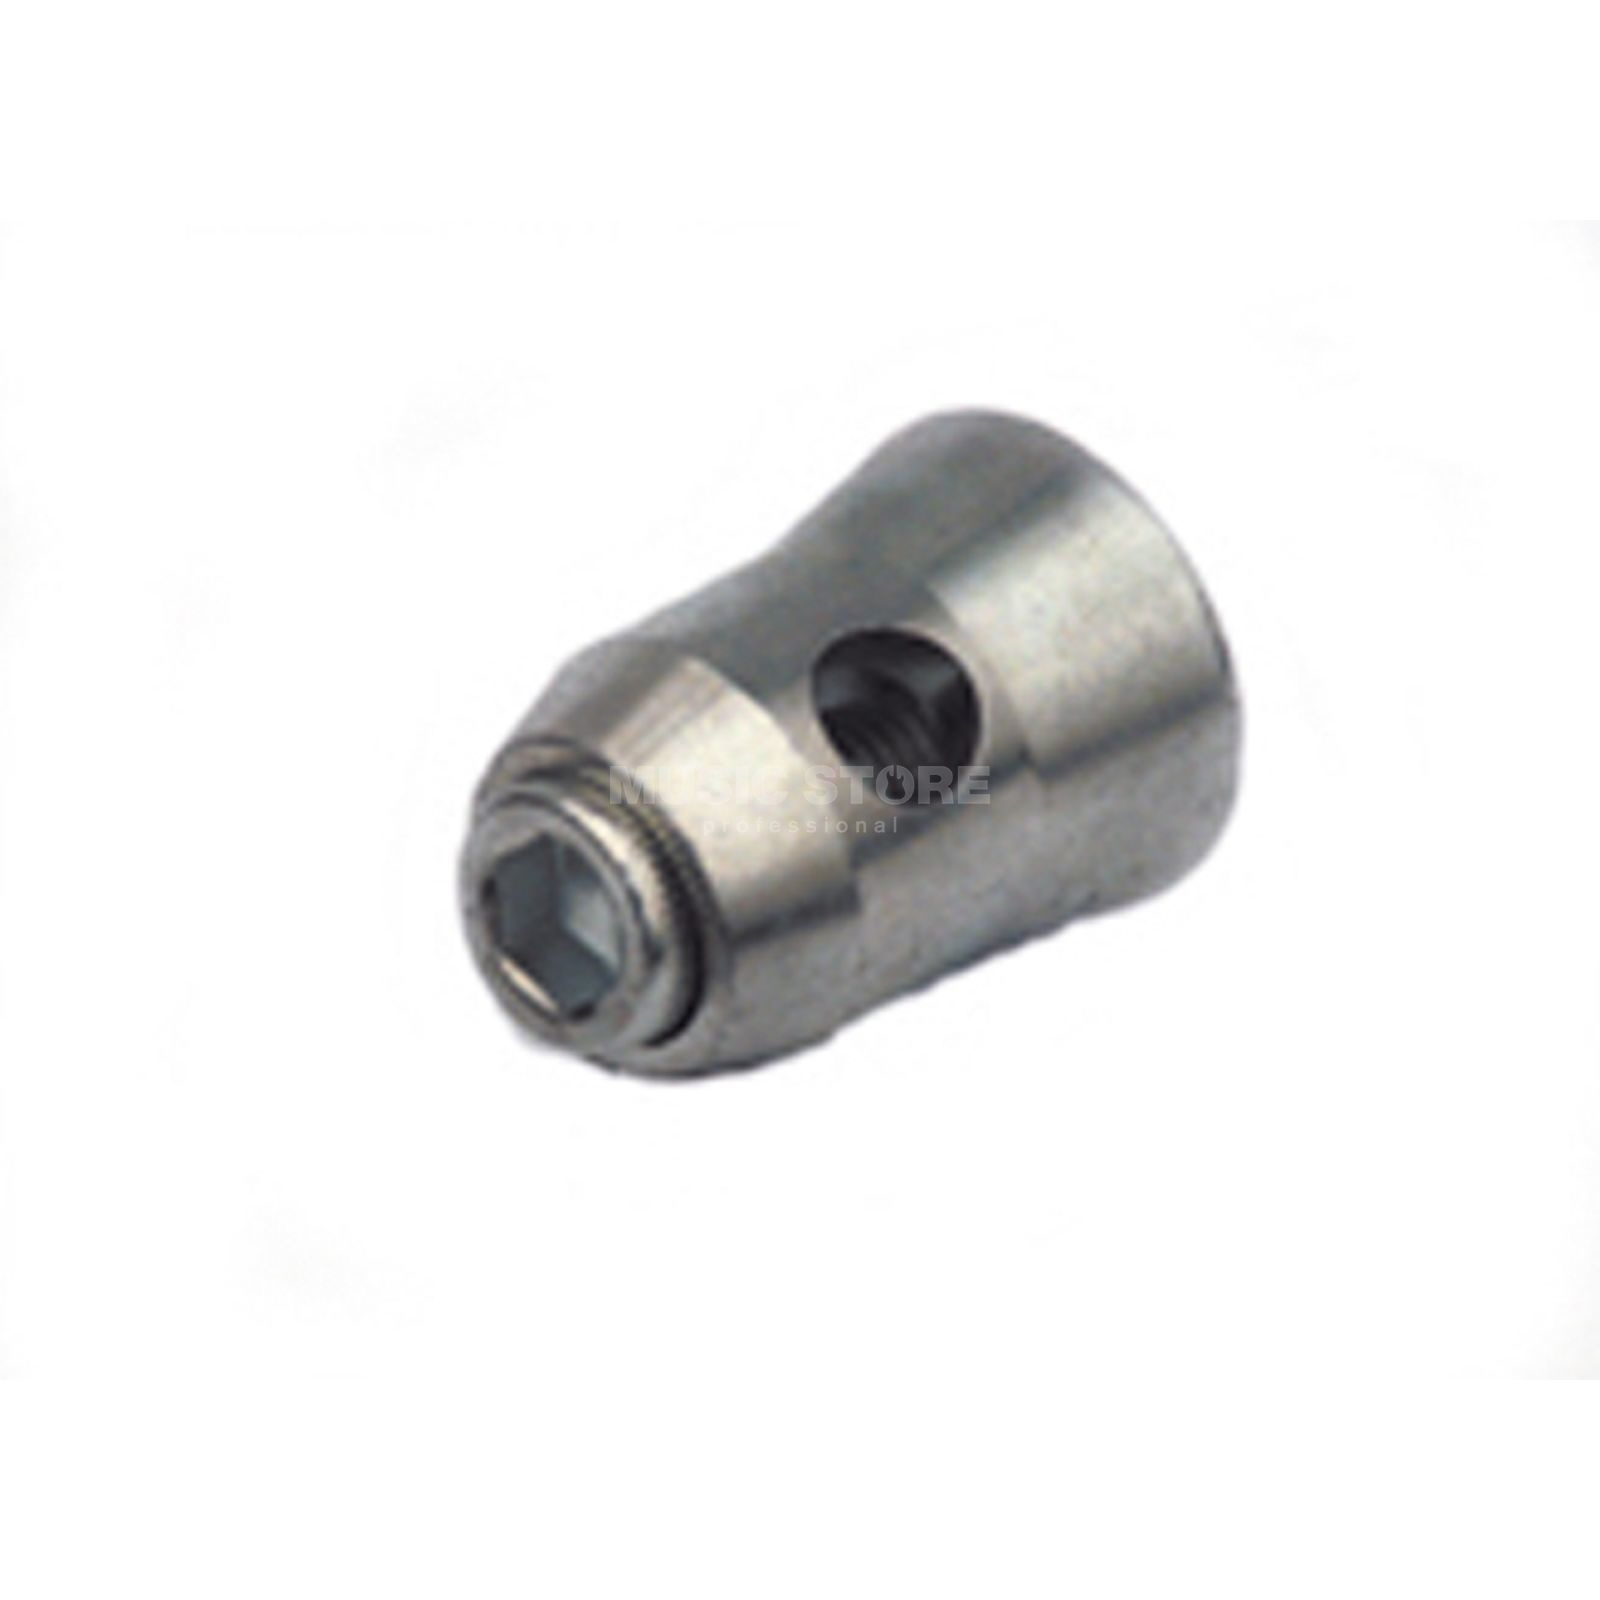 Global Truss F34 Hald-Conical Connector for Box Corner Satndad M10 Produktbillede